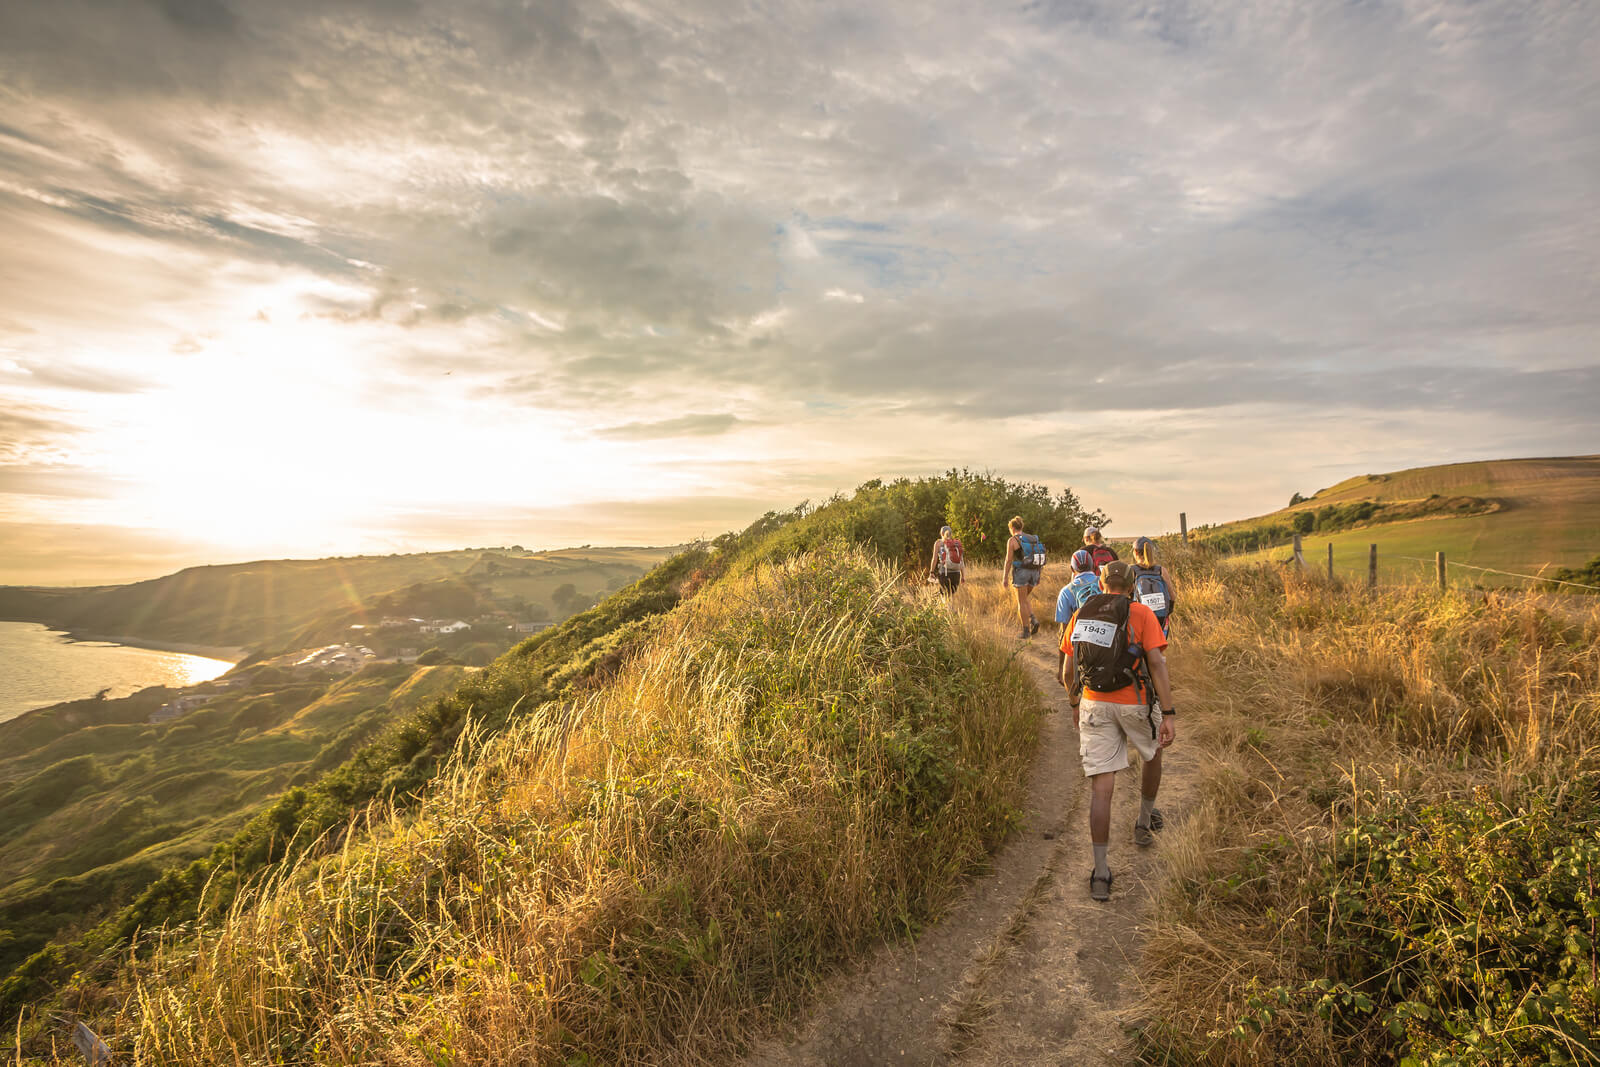 Image shows six walkers walking along a hillside path with a sunset in the background.